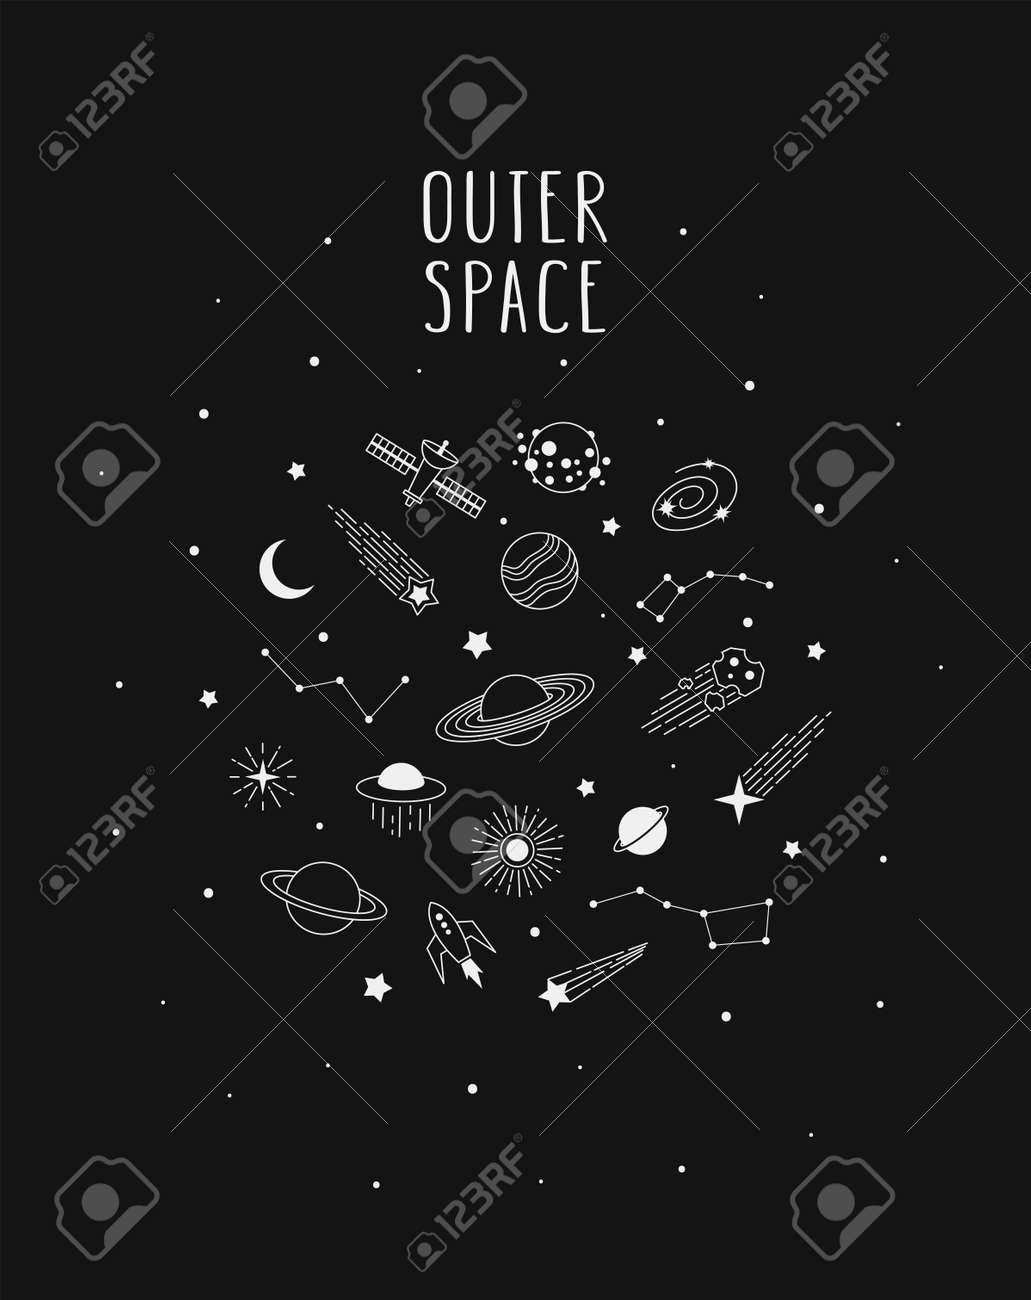 Hand drawn vector doodle of Space: planets, comets, constellations, rocket, satellite, stars and other. Nignt sky sketch illustration for t-shirt prints, posters, postcards and other designs. - 168597242